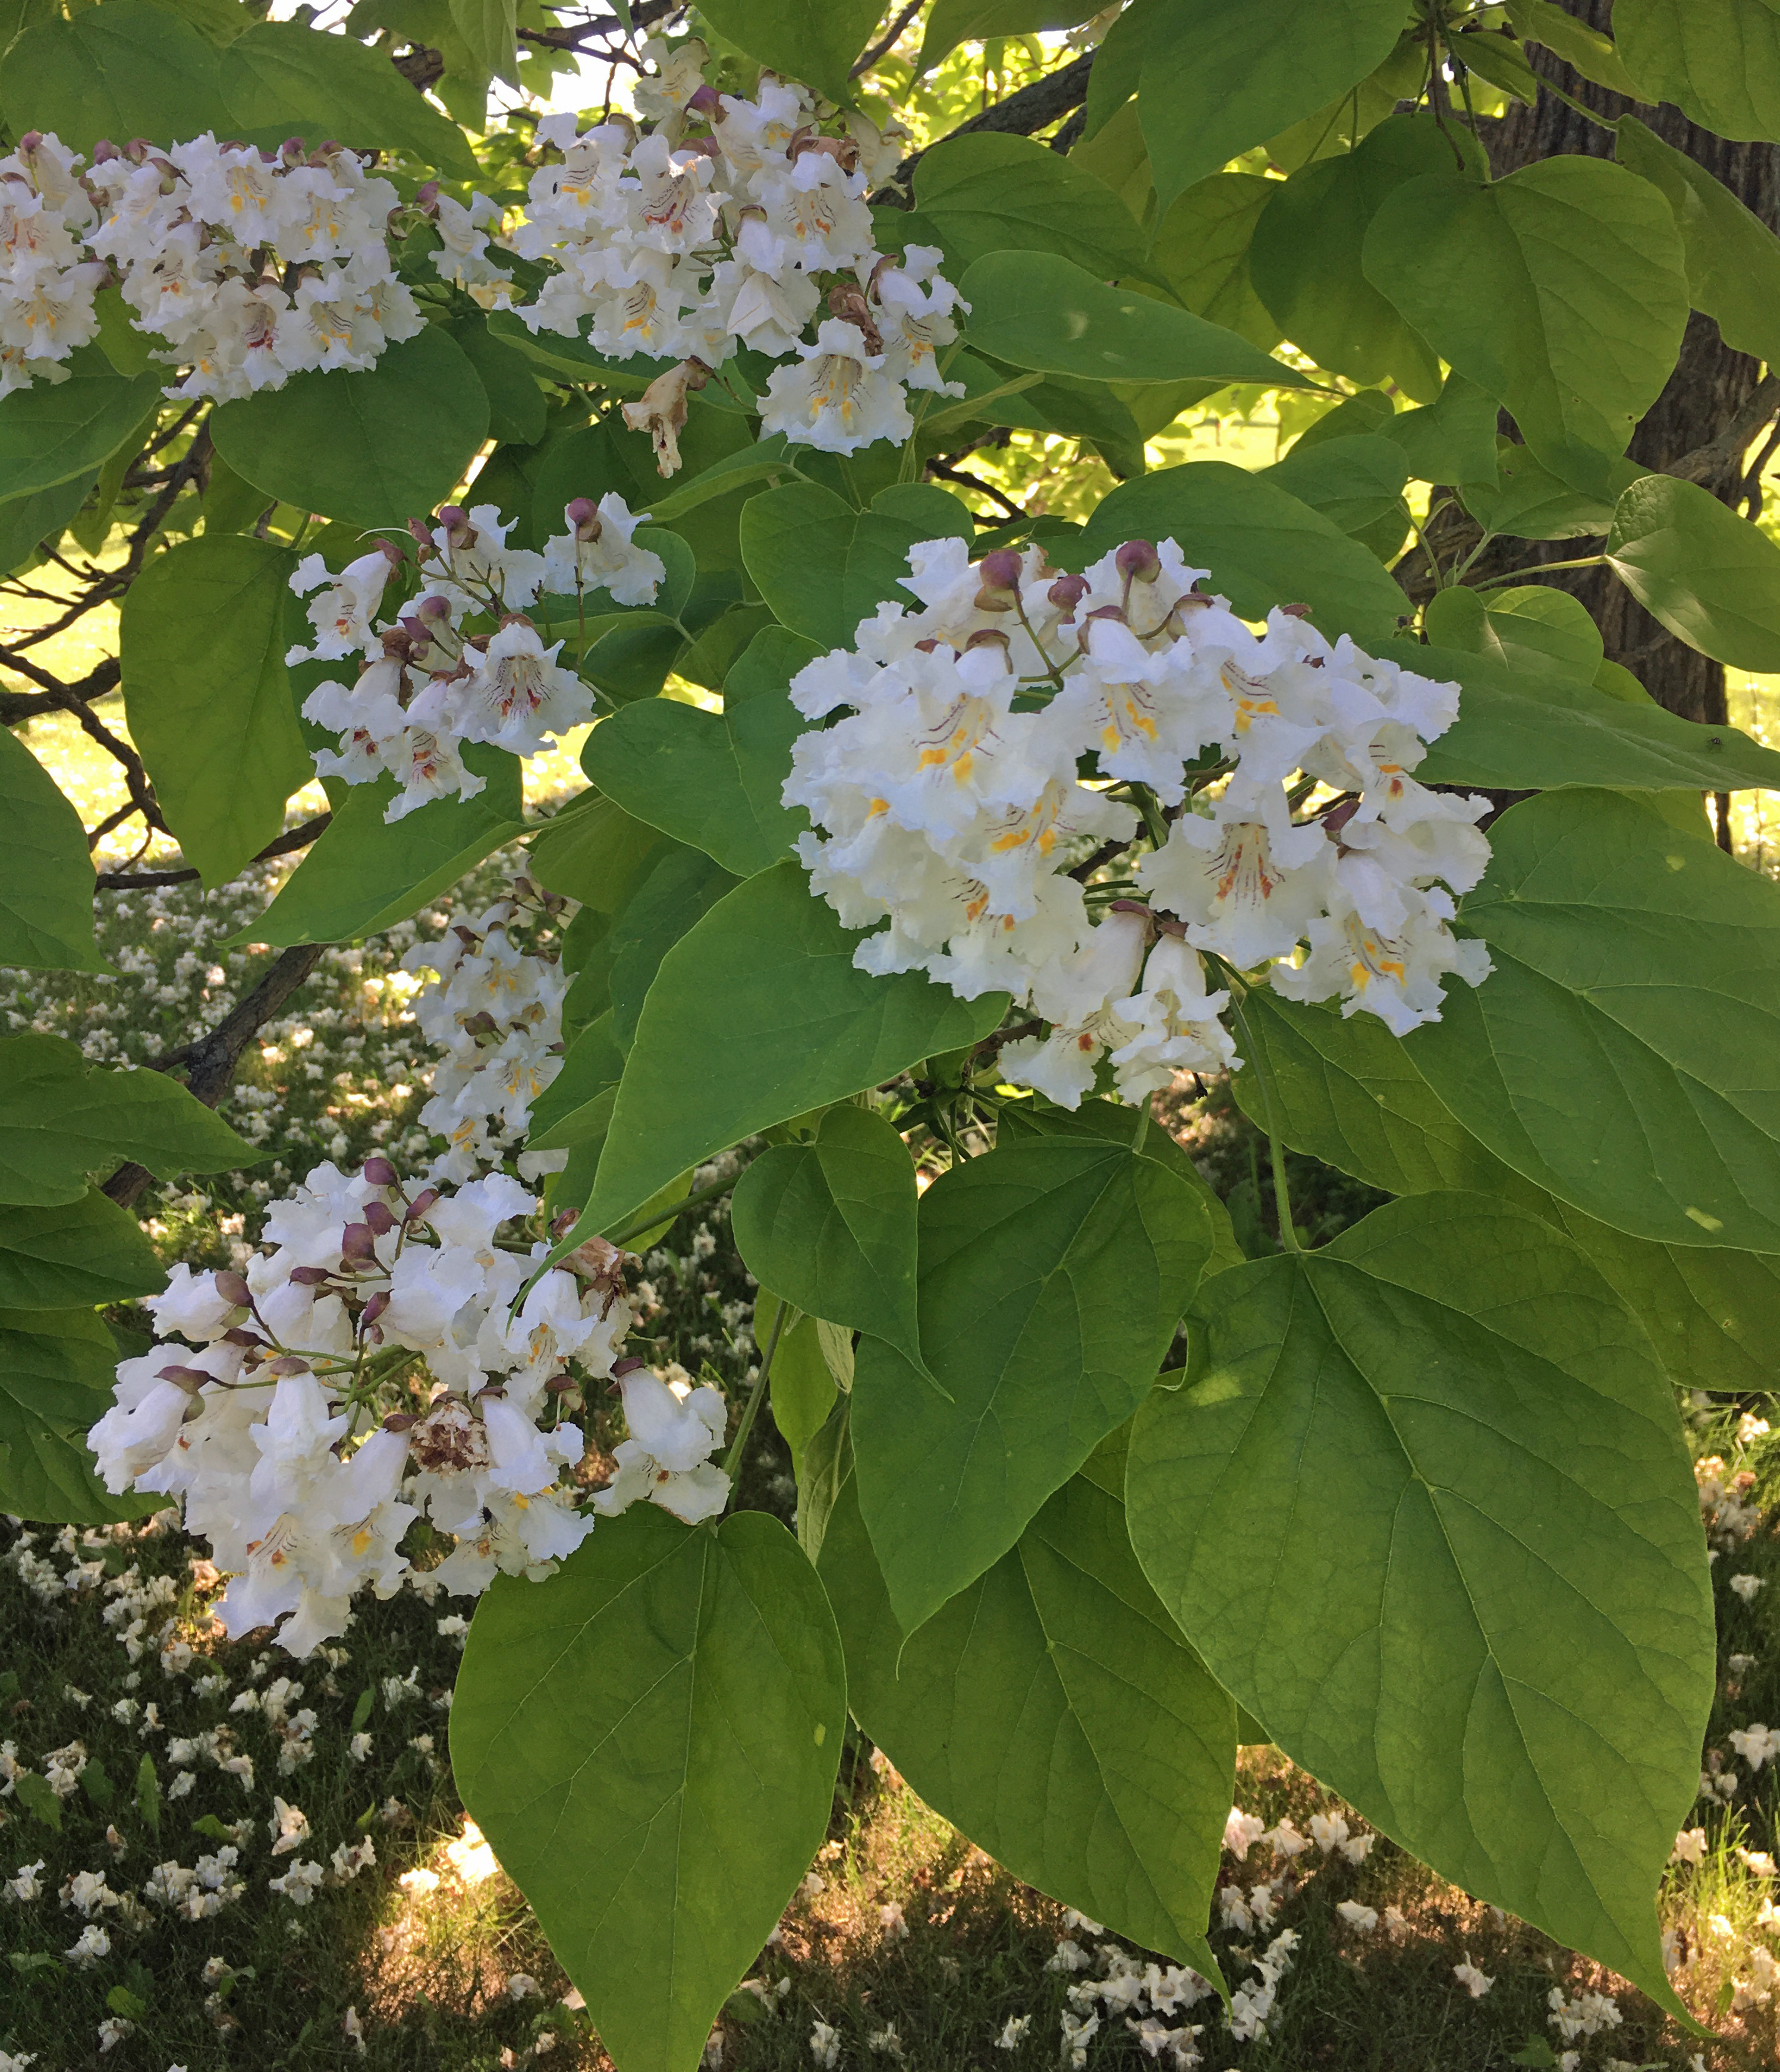 Northern catalpa flower clusters are one of the joys of spring. (NDSU photo)